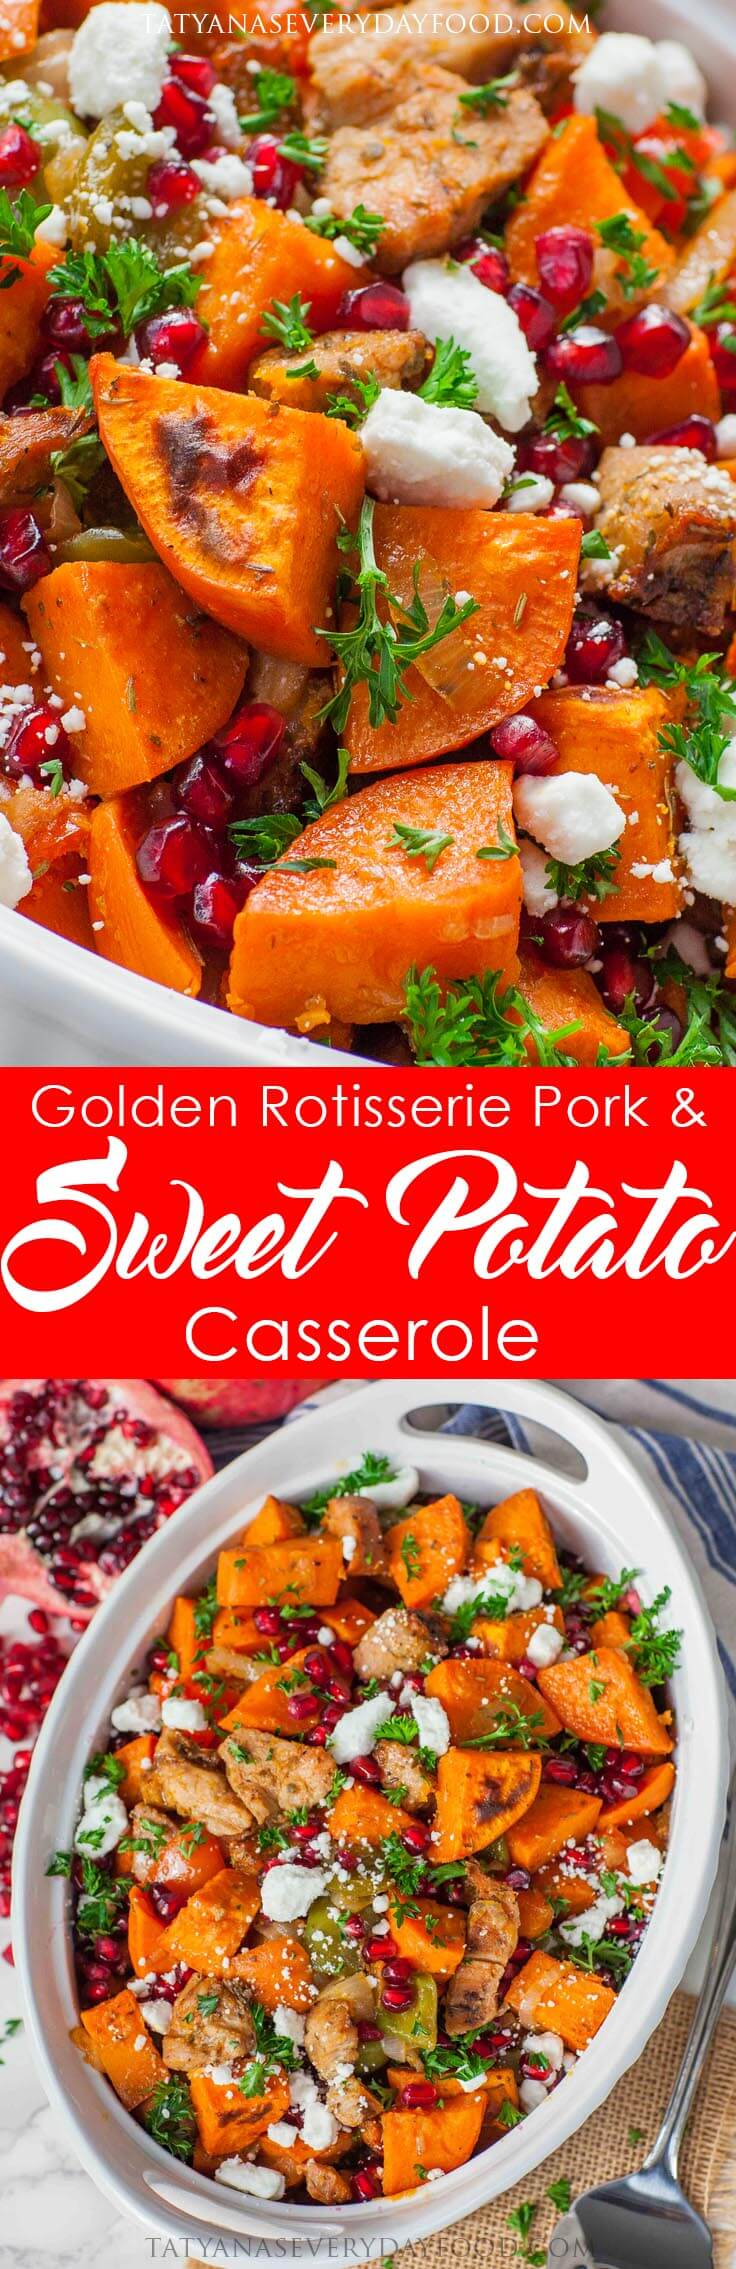 Pork & Sweet Potato Casserole with pomegranate and goat cheese